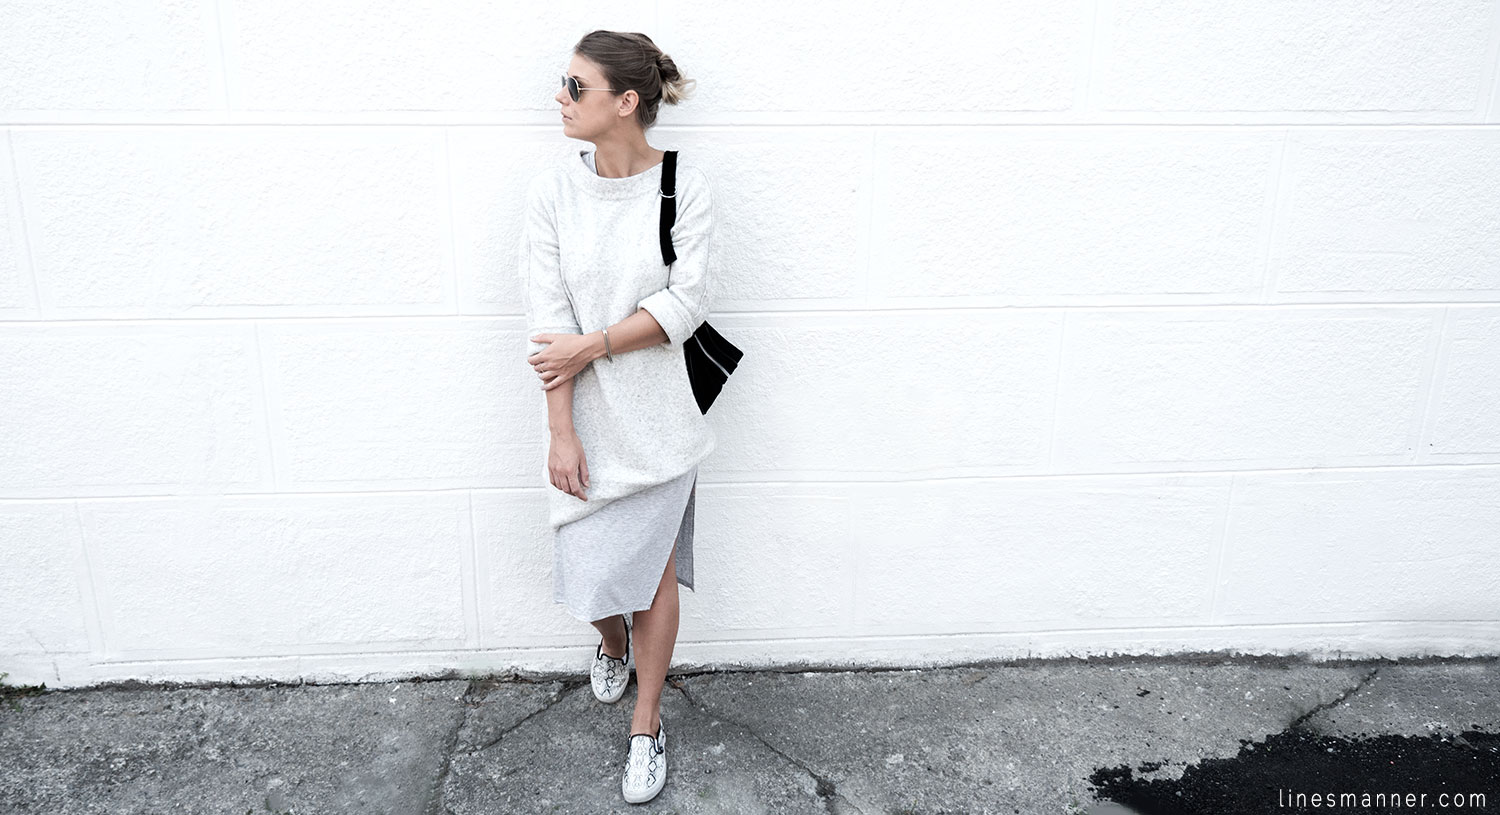 Lines-Manner-Fashion-Collaboration-The_Demeler-Monochrome-Grey_on_Grey-Fresh-Brightly-Outfit-Simplicity-Details-Trend-Minimalist-Flowy-Layering-Sleeves-Sweater_Dress-20